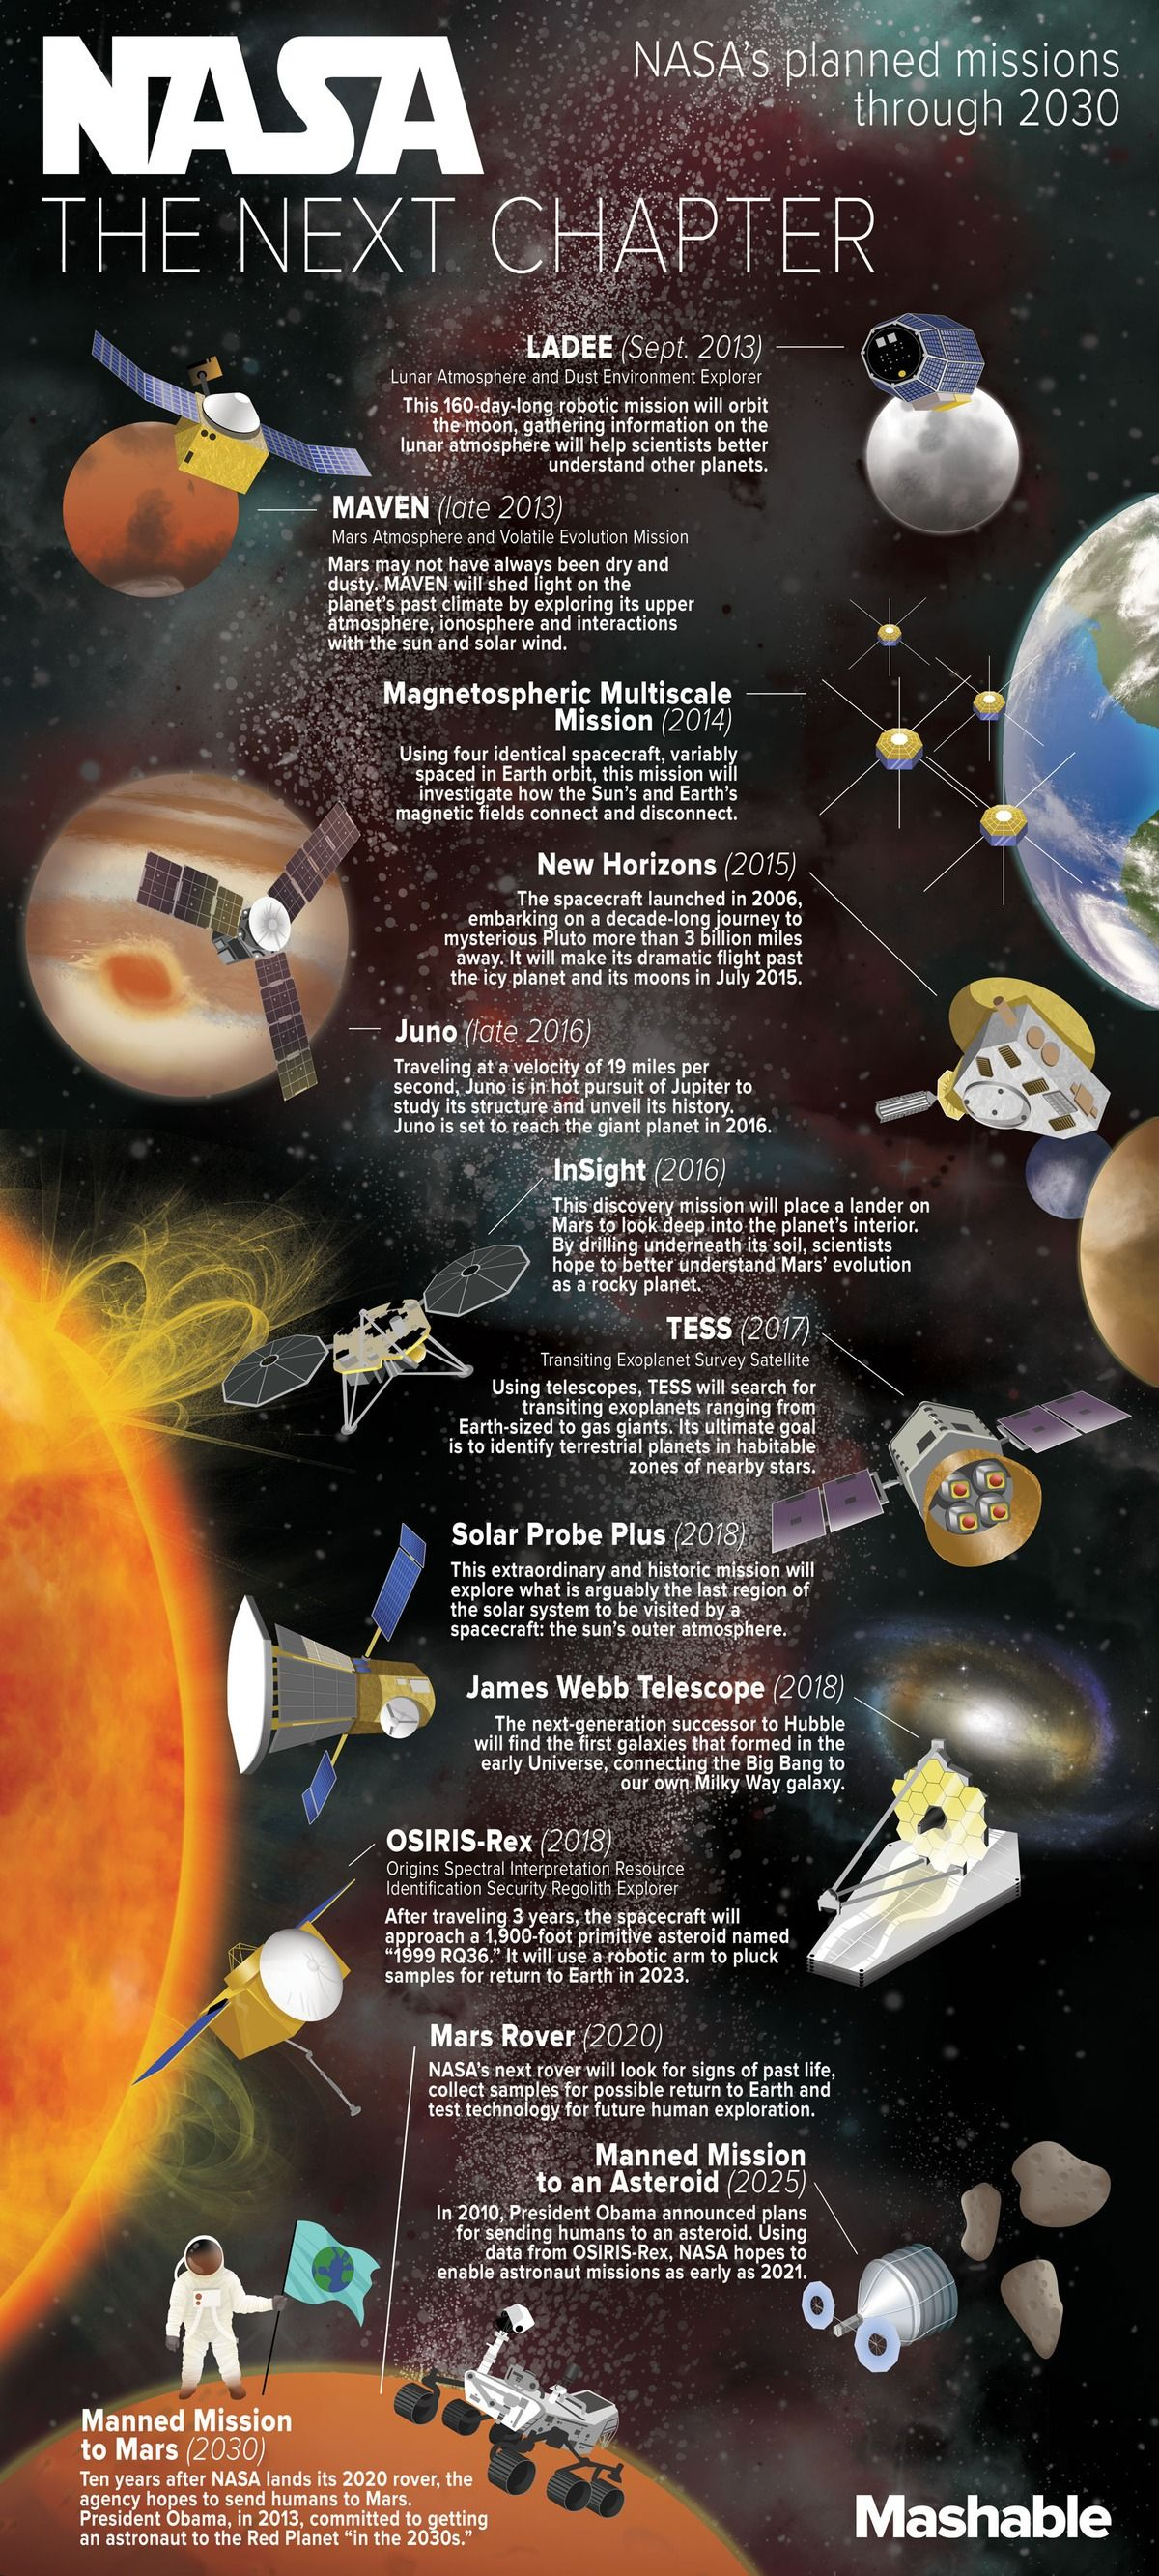 What S Next For Nasa Planned Missions Through 2030 Astronomy